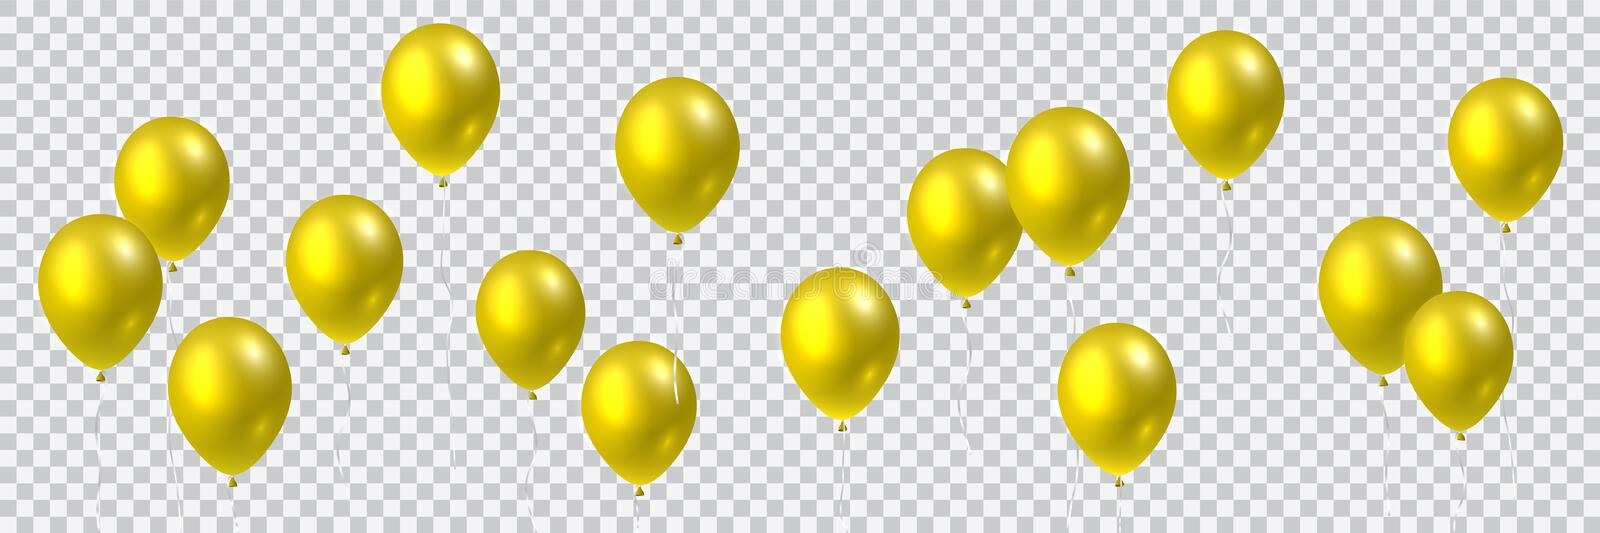 Beautiful colorful realistic seamless vector of golden flying party balloons vector illustration